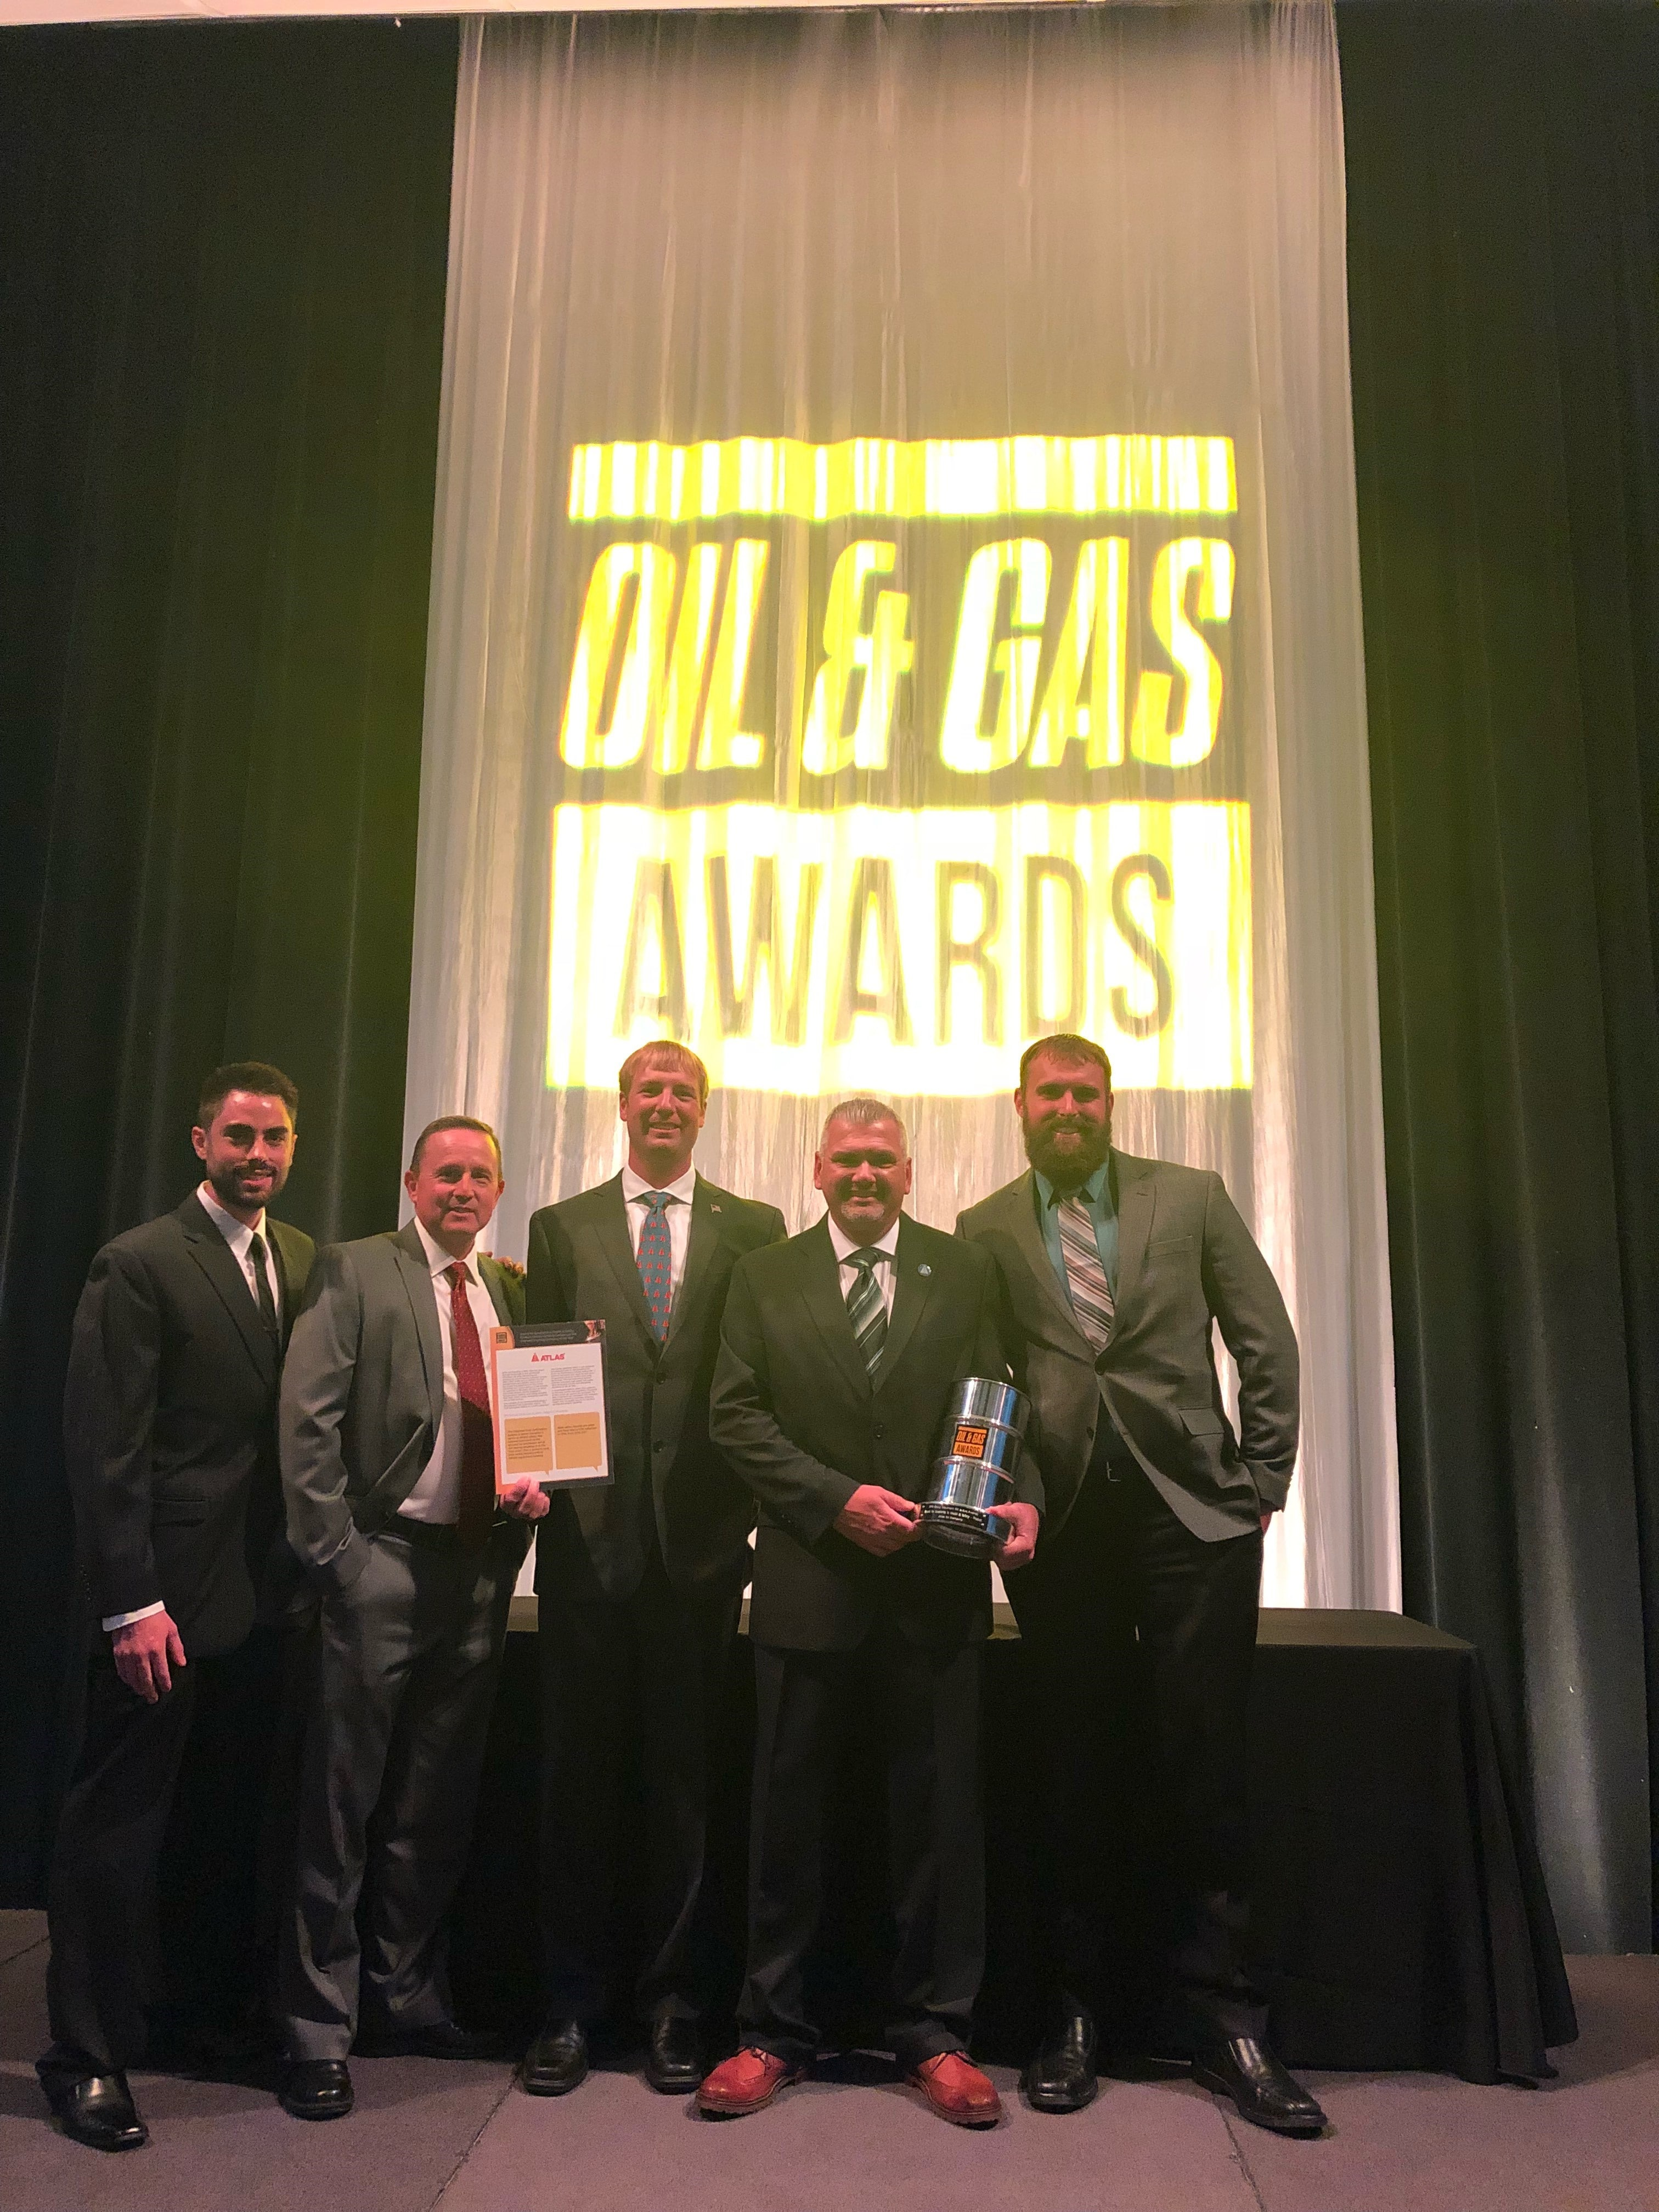 Atlas leadership poses with the Rocky Mountain Oil and Gas Awards